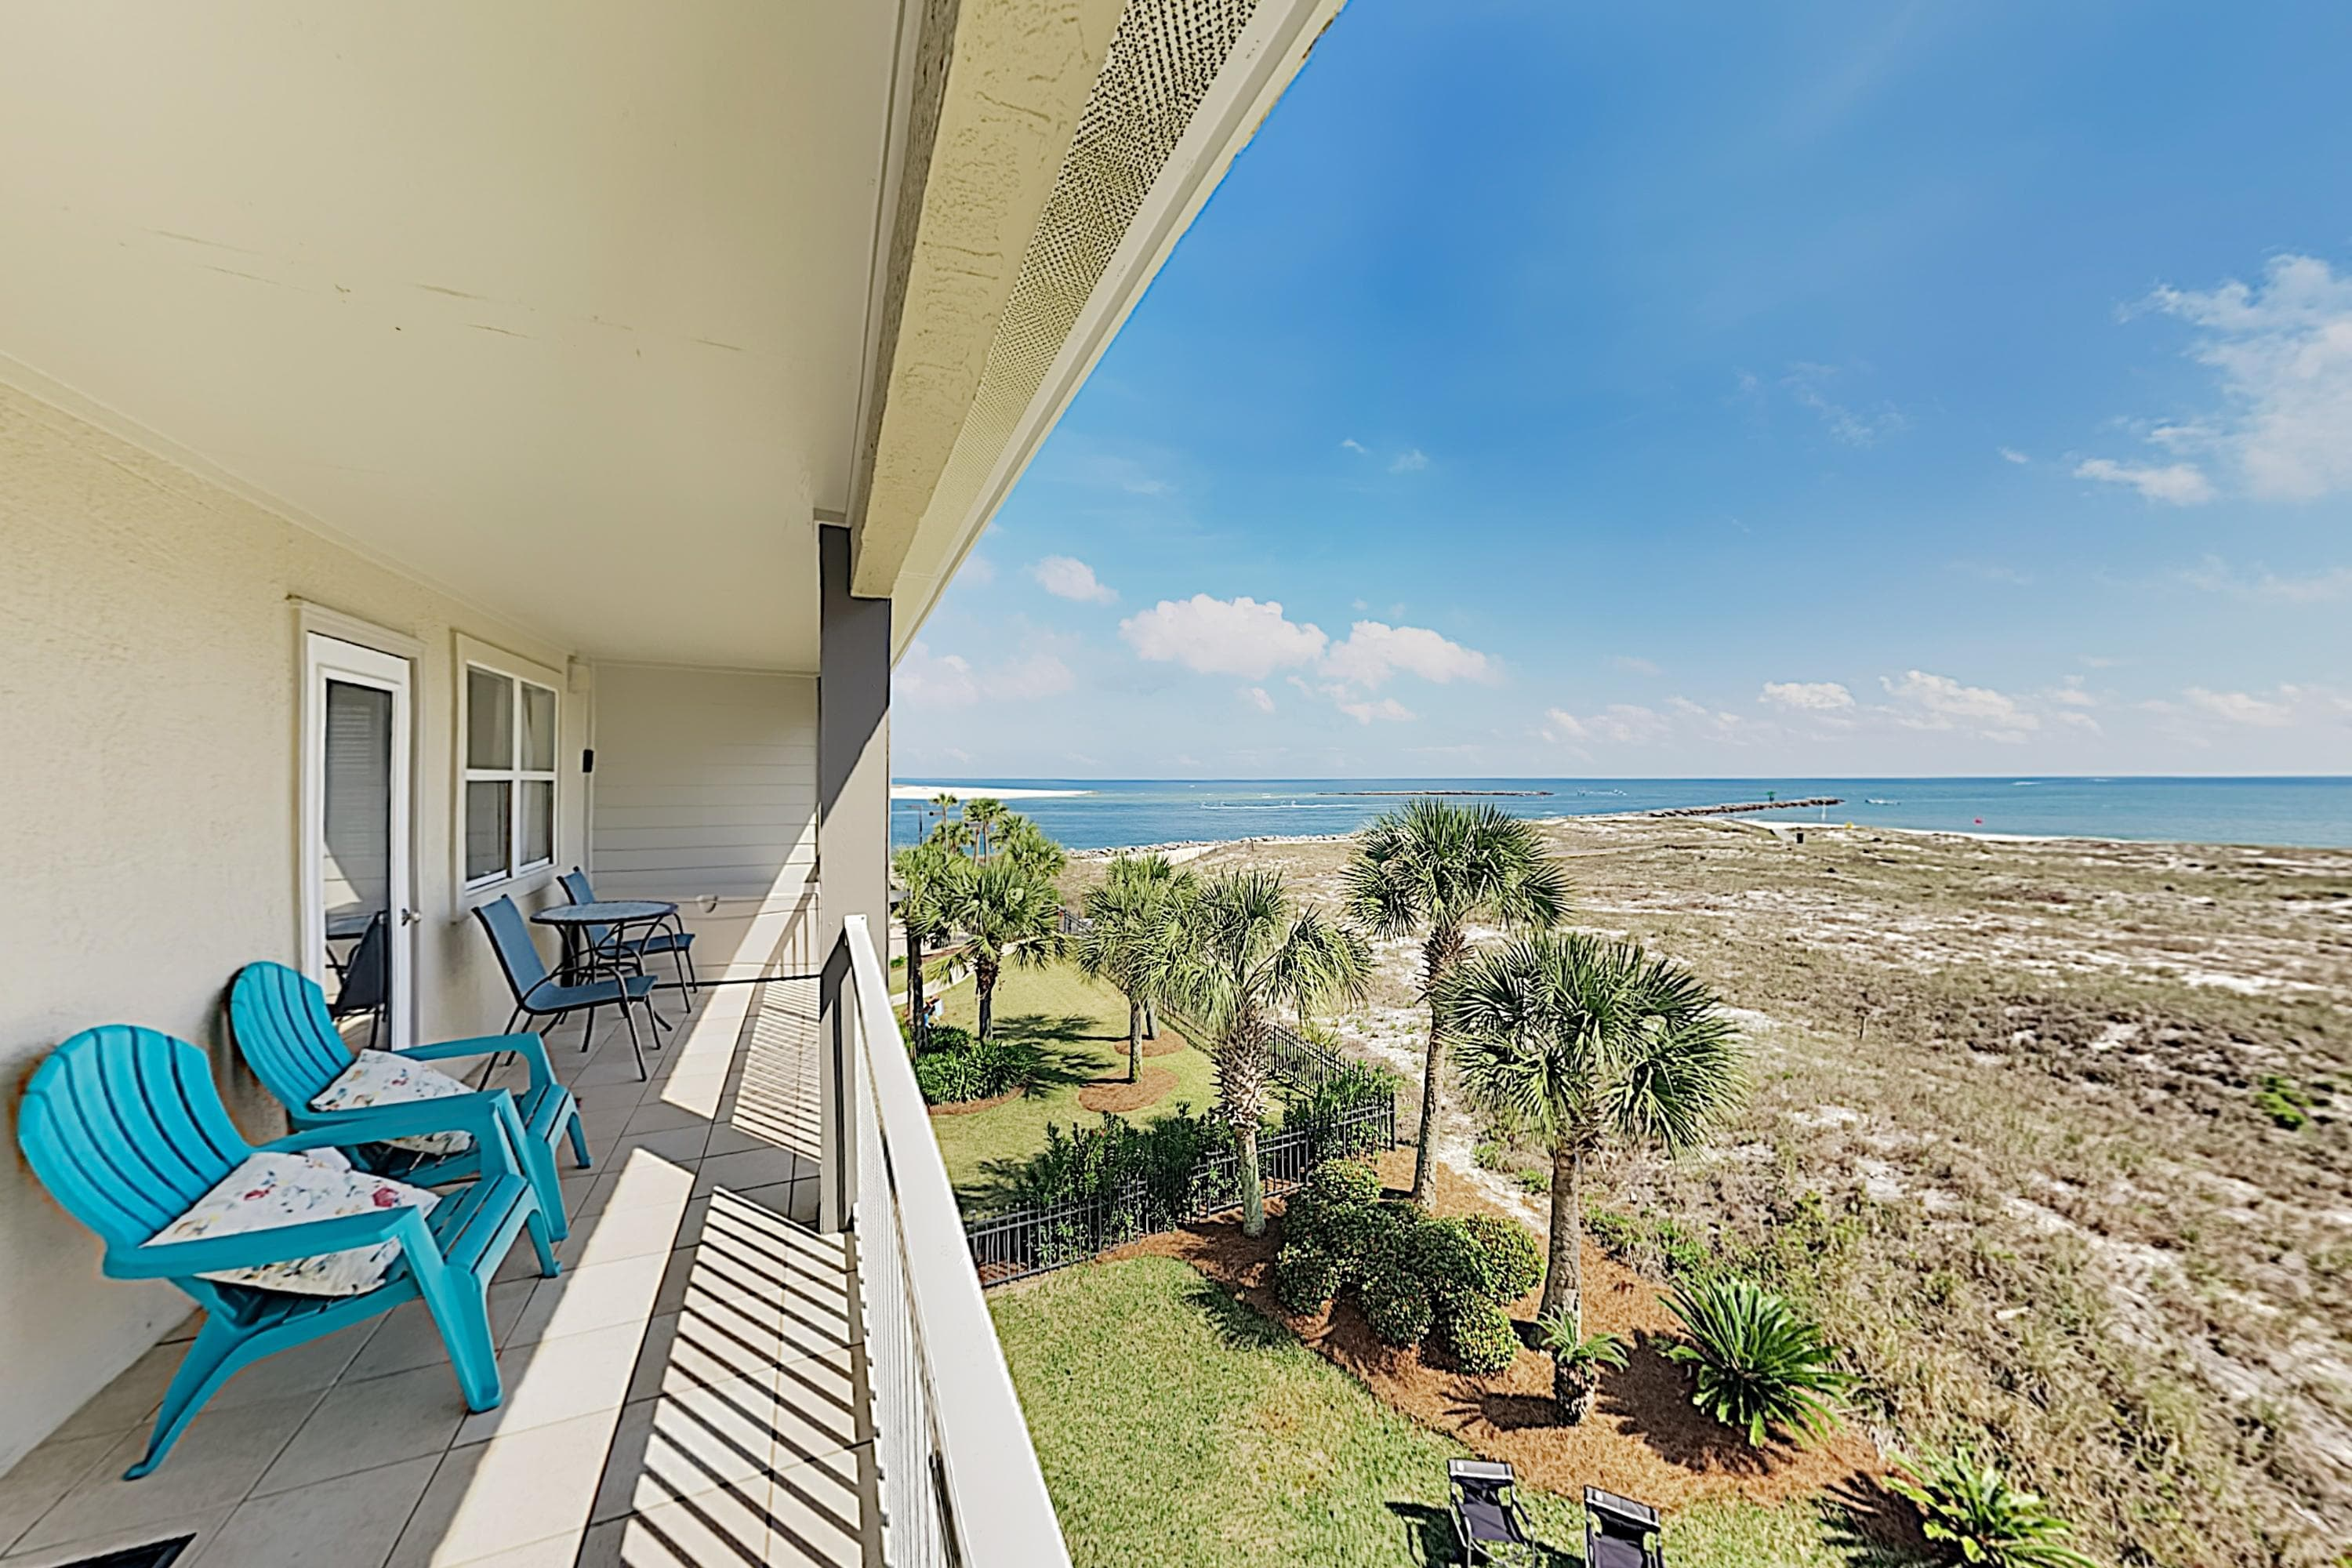 Property Image 1 - Pretty Gulf View Condo with Balcony & Pool Access; Steps to Sand